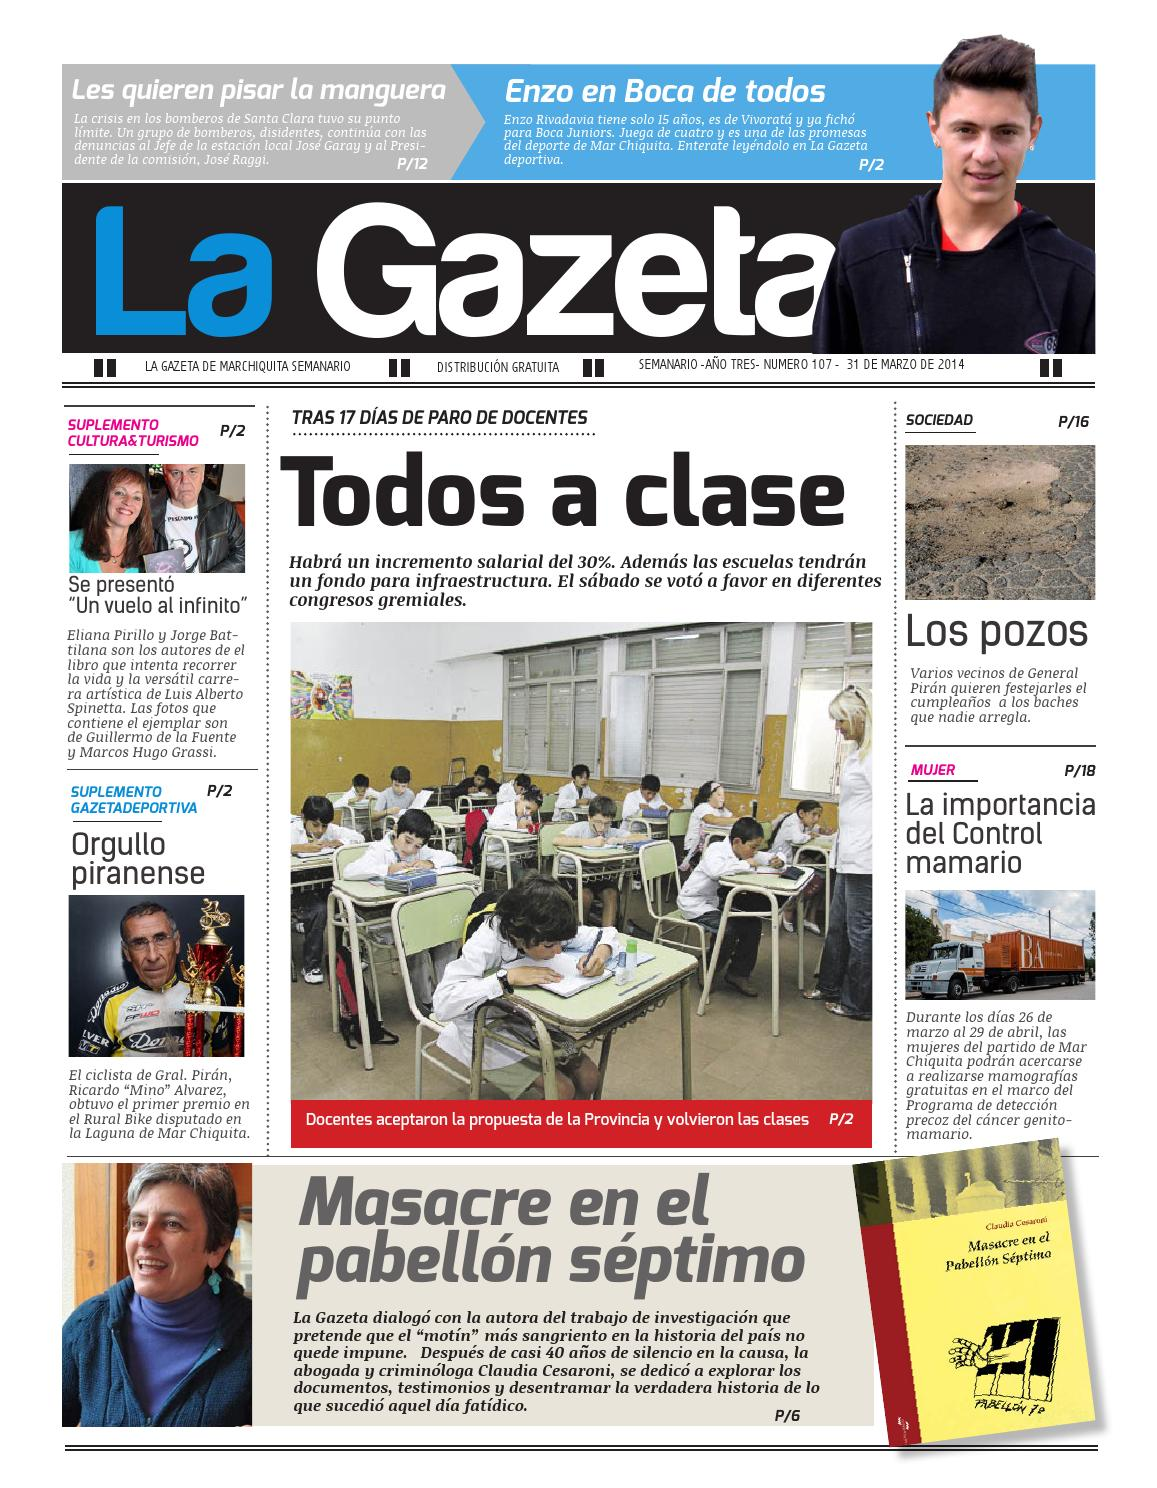 La Gazeta 31/03/2014 by La Gazeta Mar Chiquita - issuu